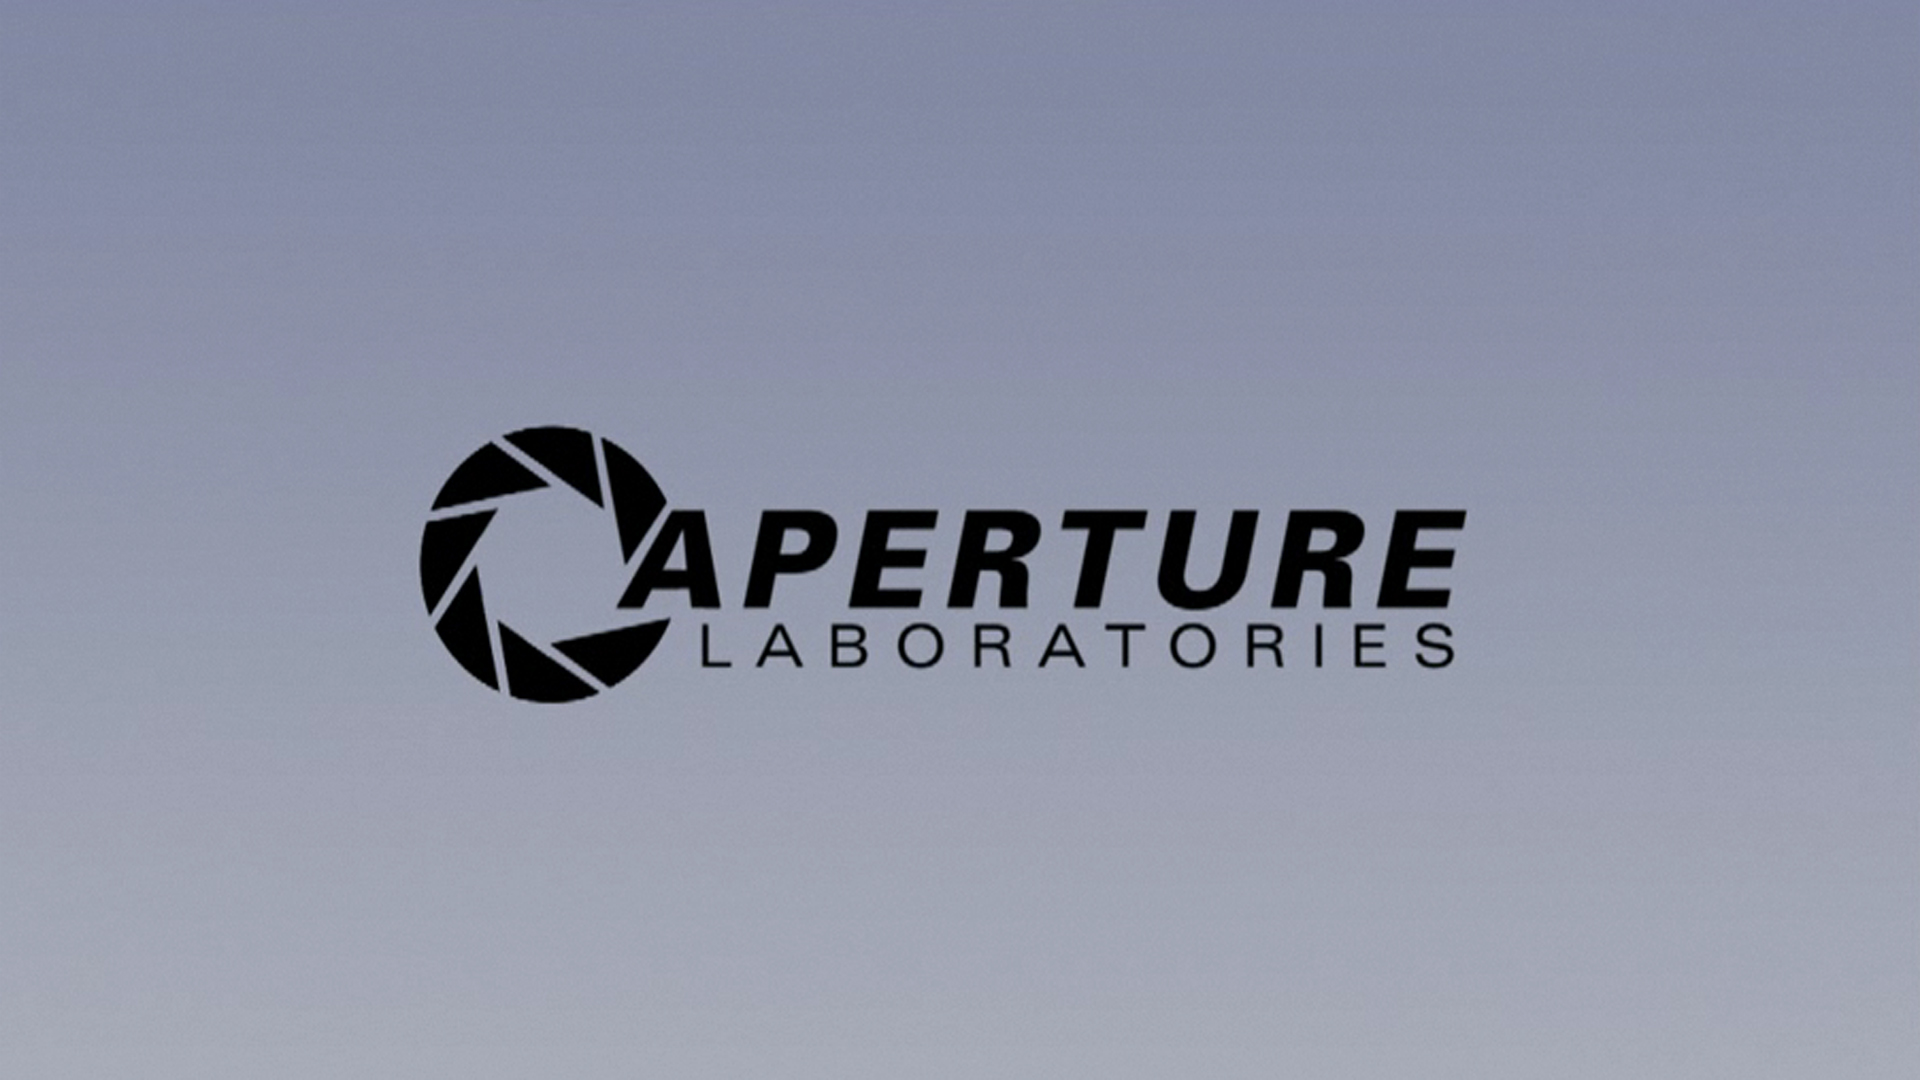 Aperture Labs wallpaper - 417079